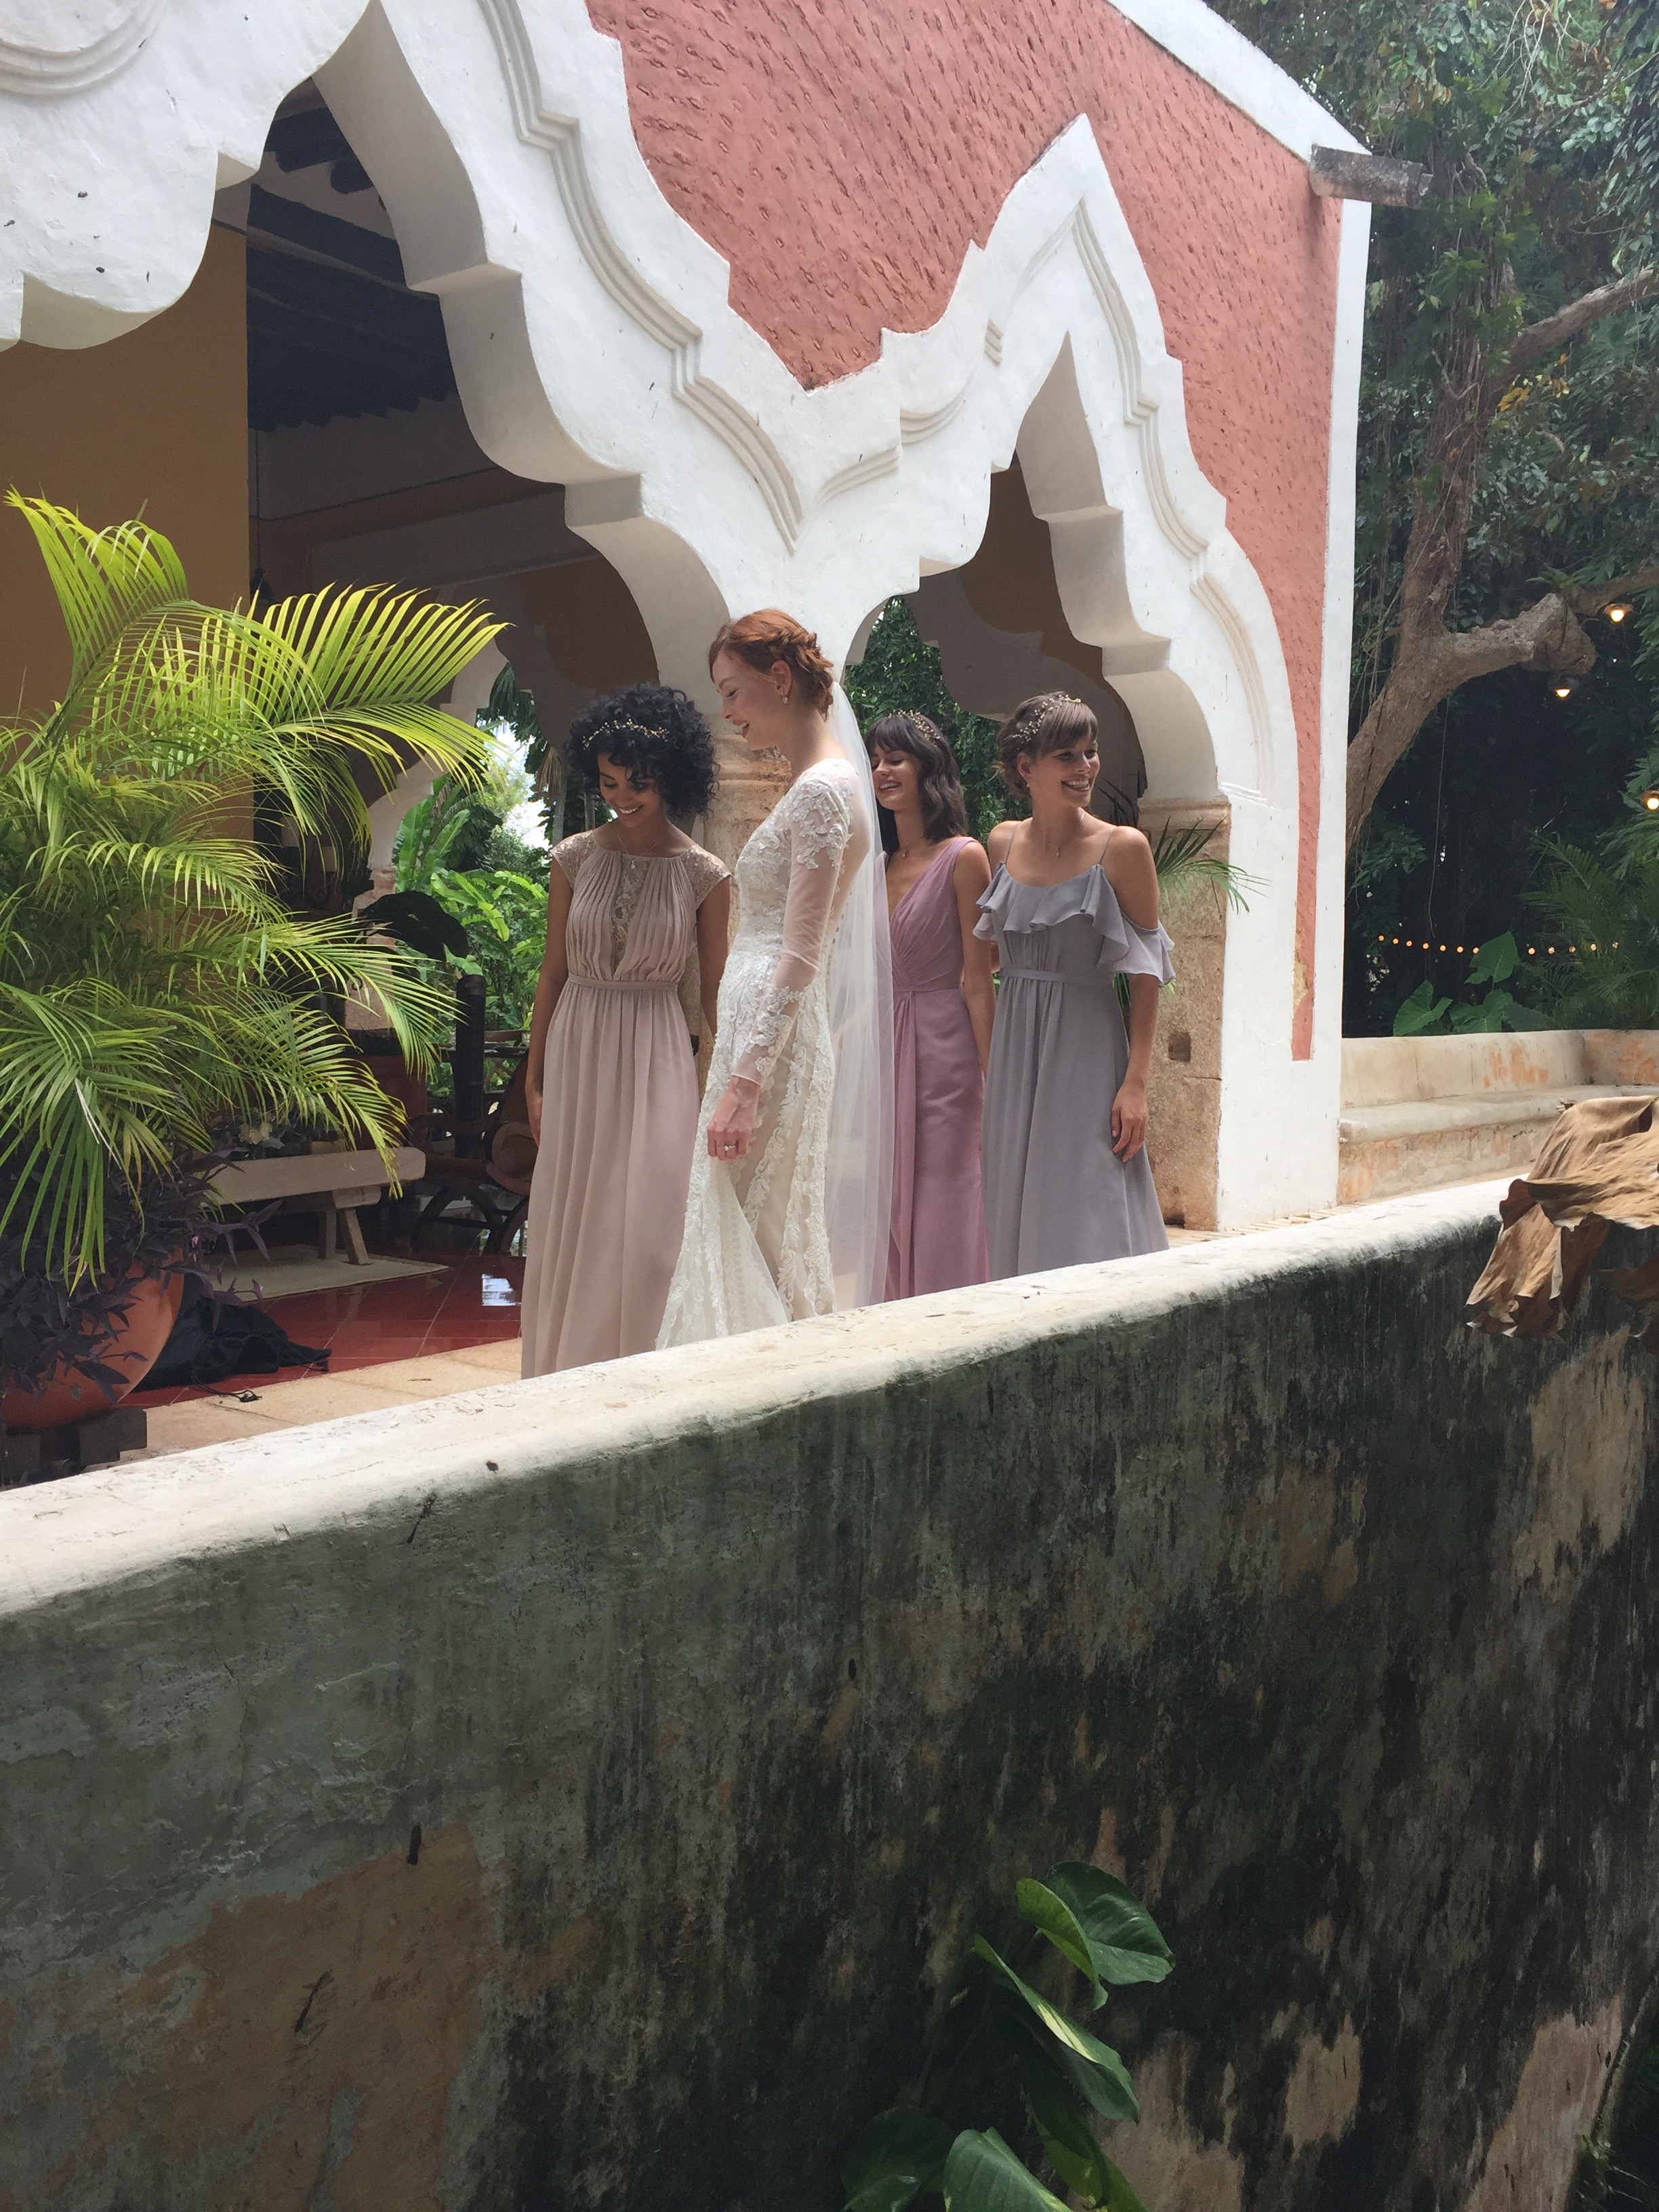 An ethereal bride and bridesmaids on set of the Fall 2017 Melissa Sweet collection photo shoot. See more on the David's Bridal blog - www.davidsbridal.com/blog.